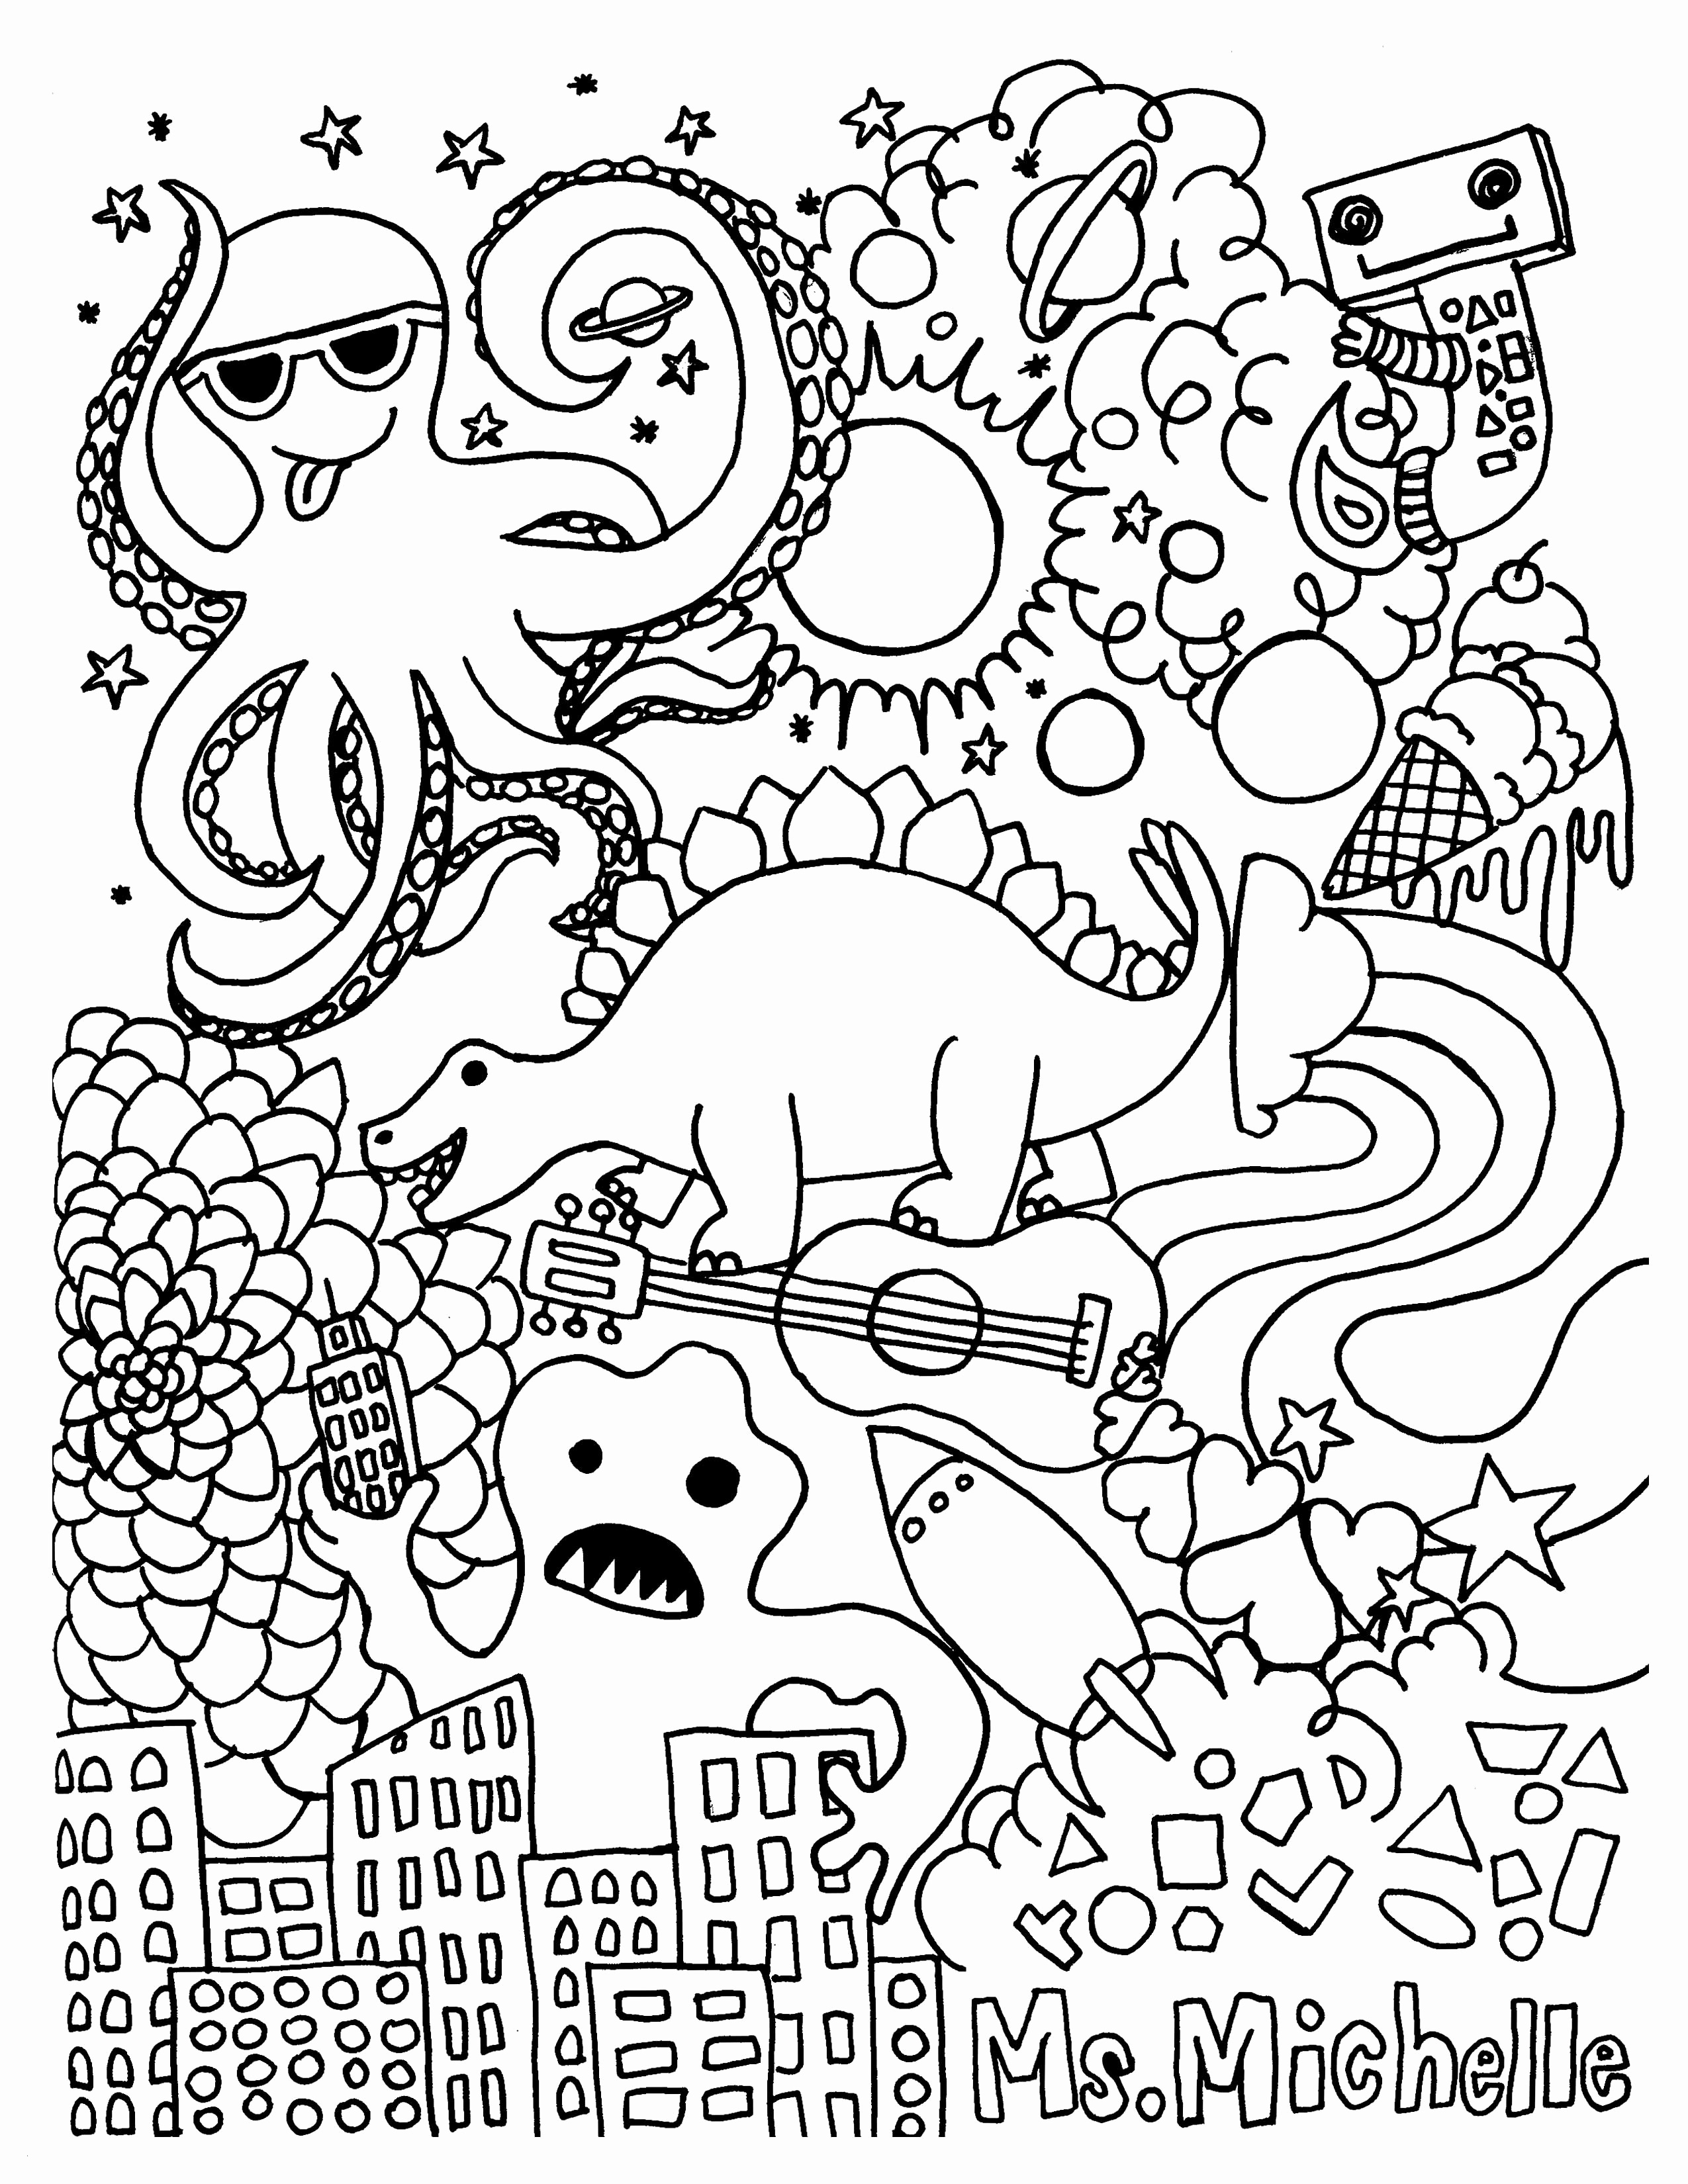 dan tdm coloring pages Download-Coloring Pages 18-h